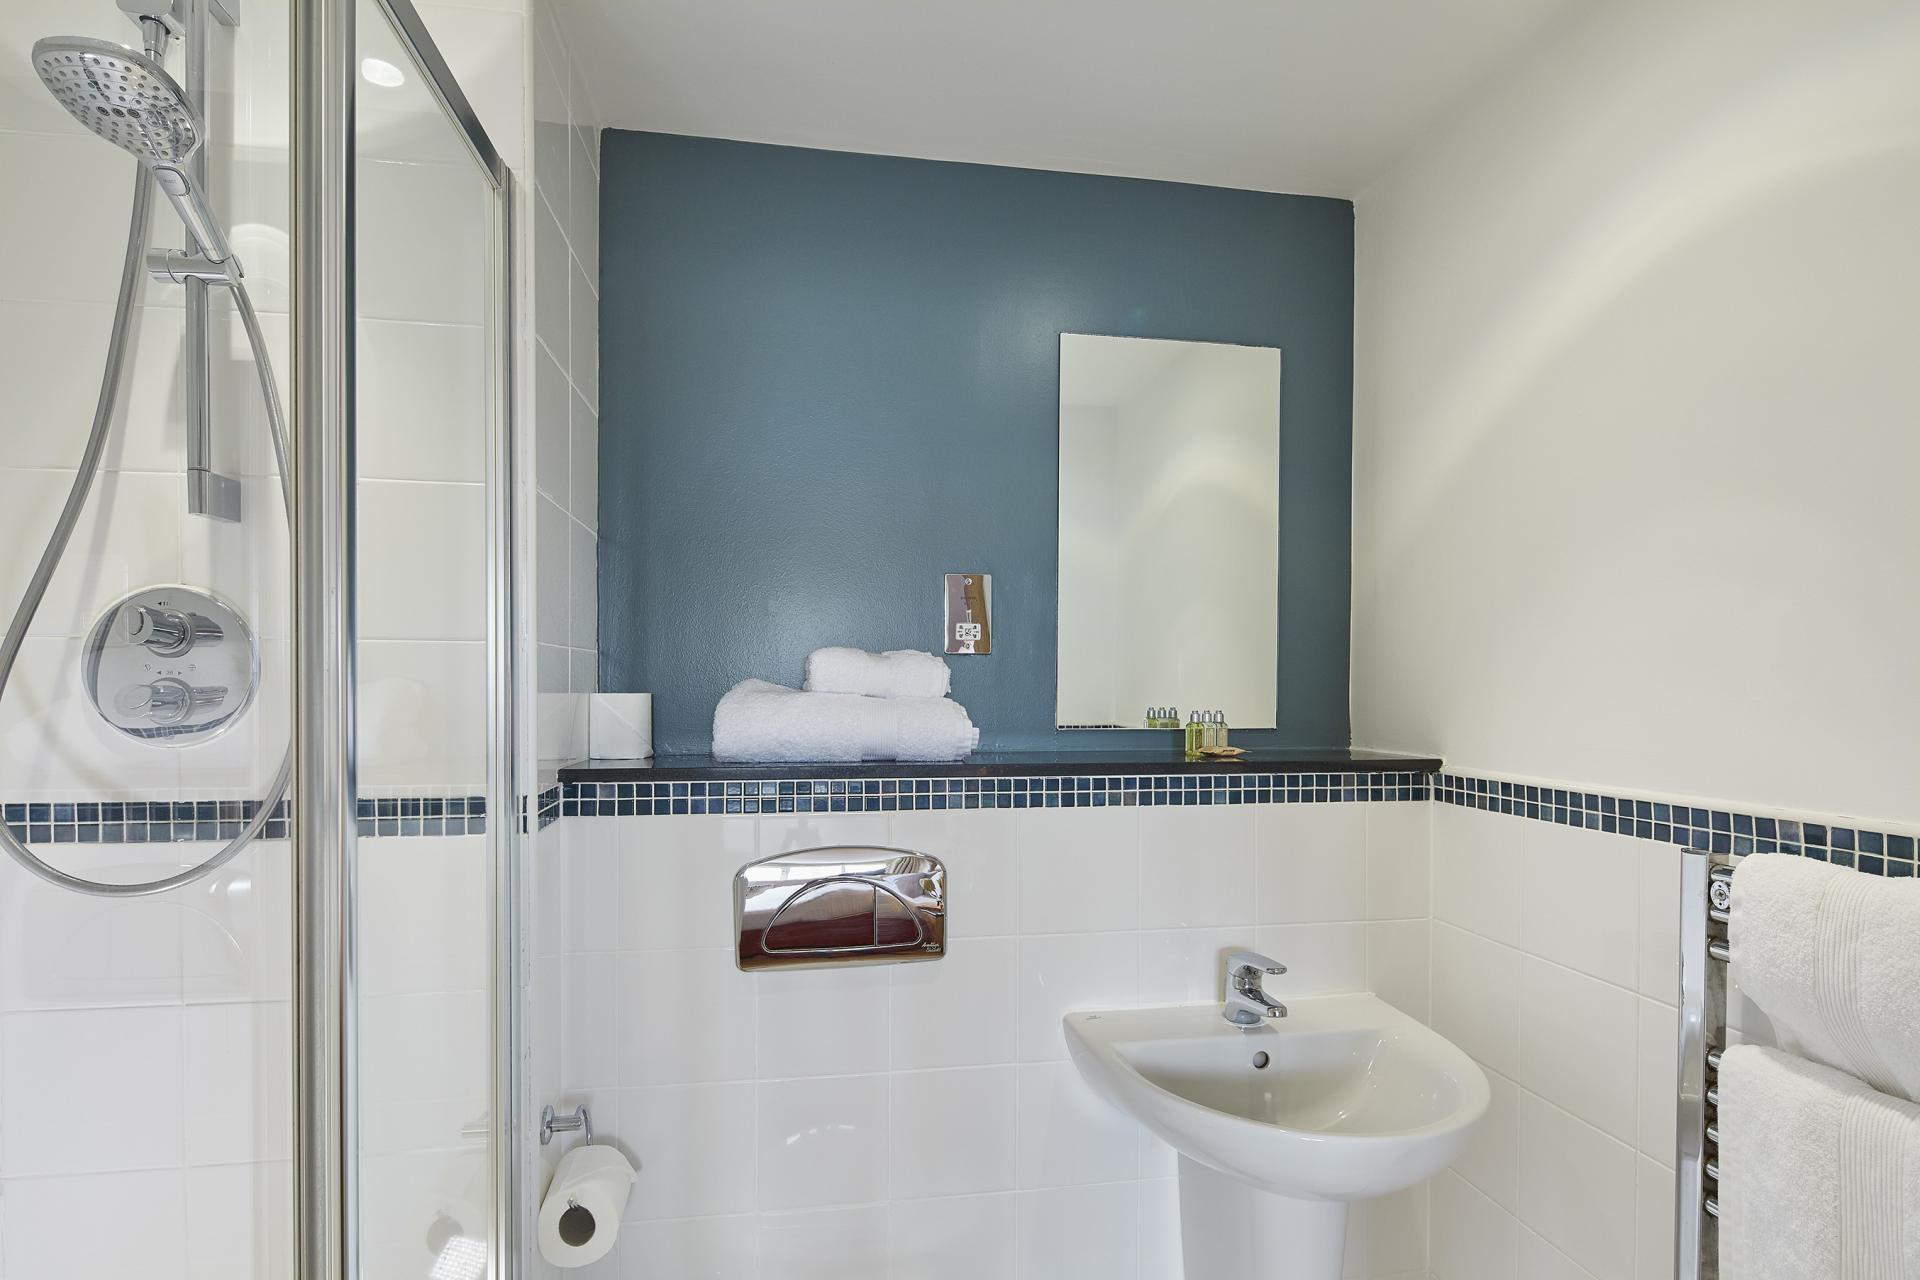 Bathroom at Limehouse Apartments, Limehouse, London - Citybase Apartments